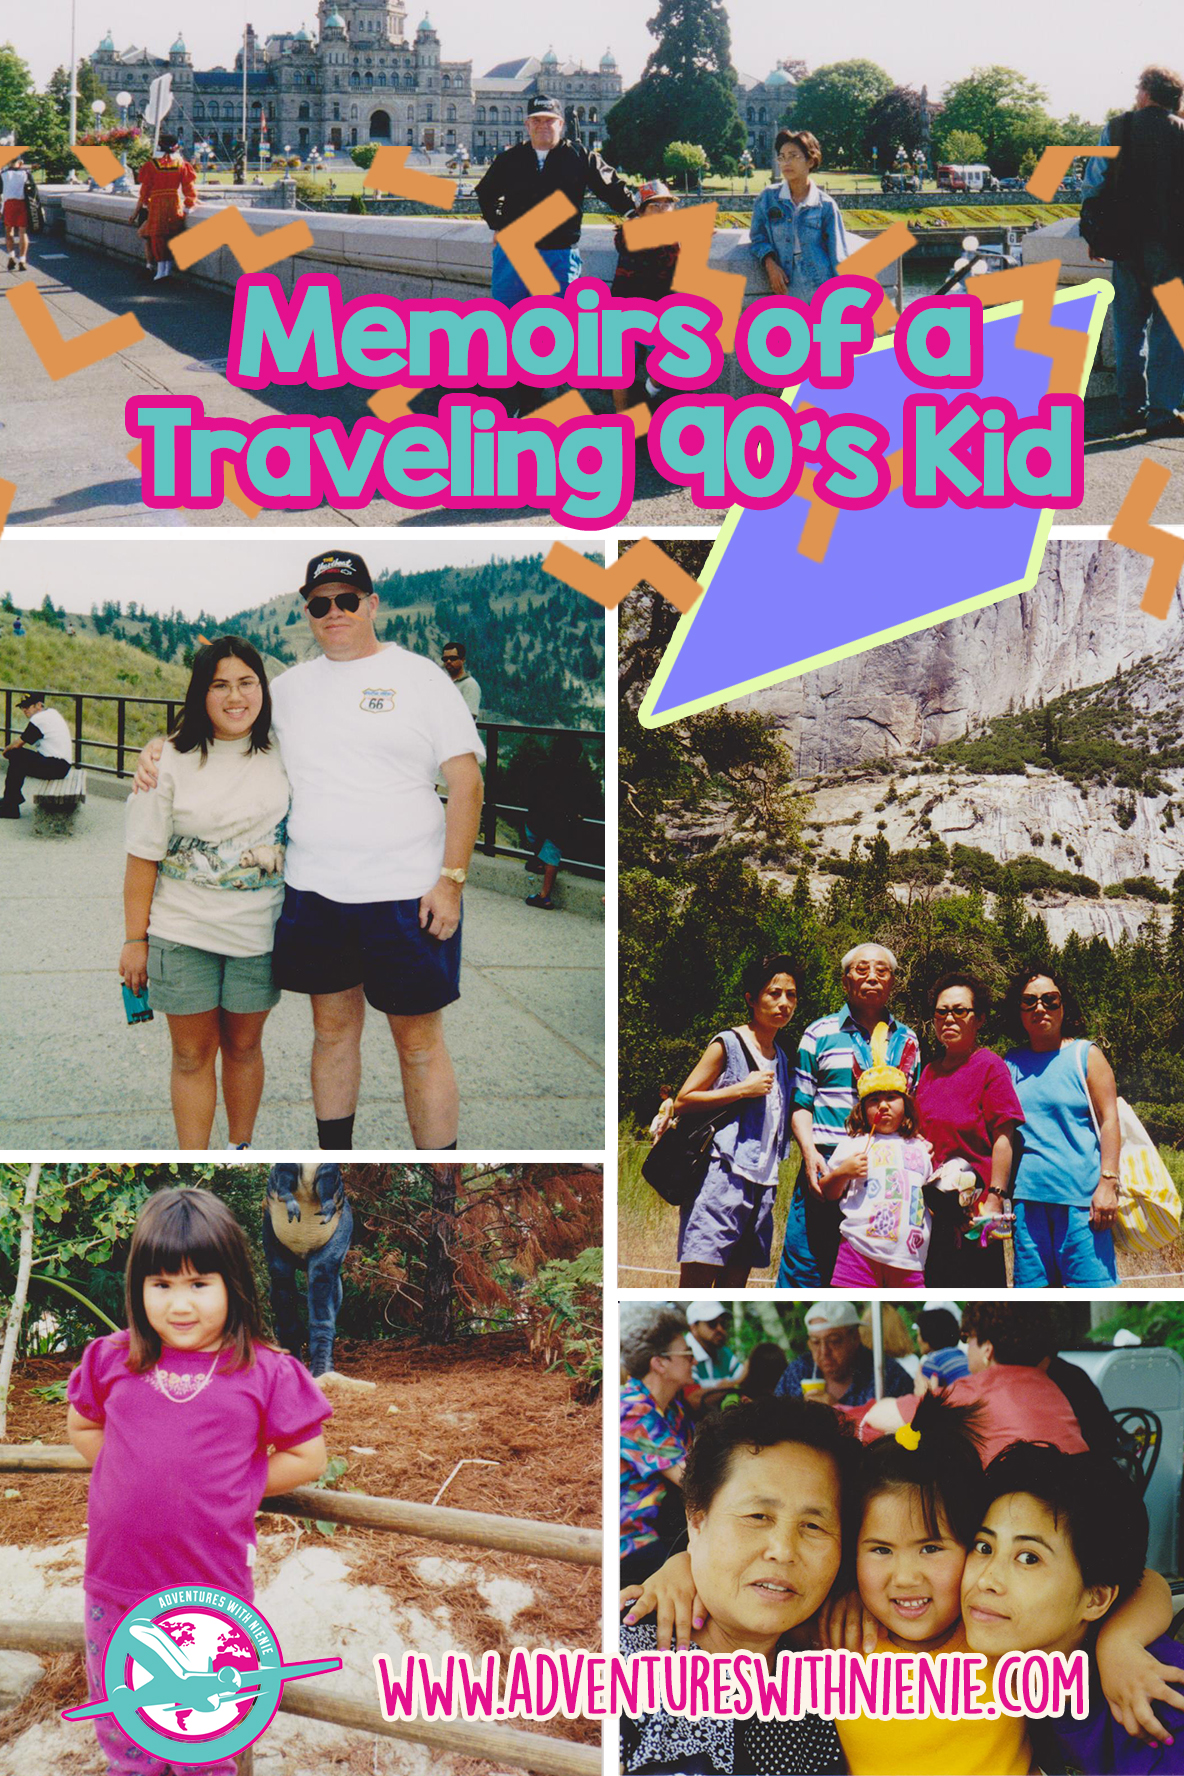 Memoirs of a Traveling 90's Kid Pinterest